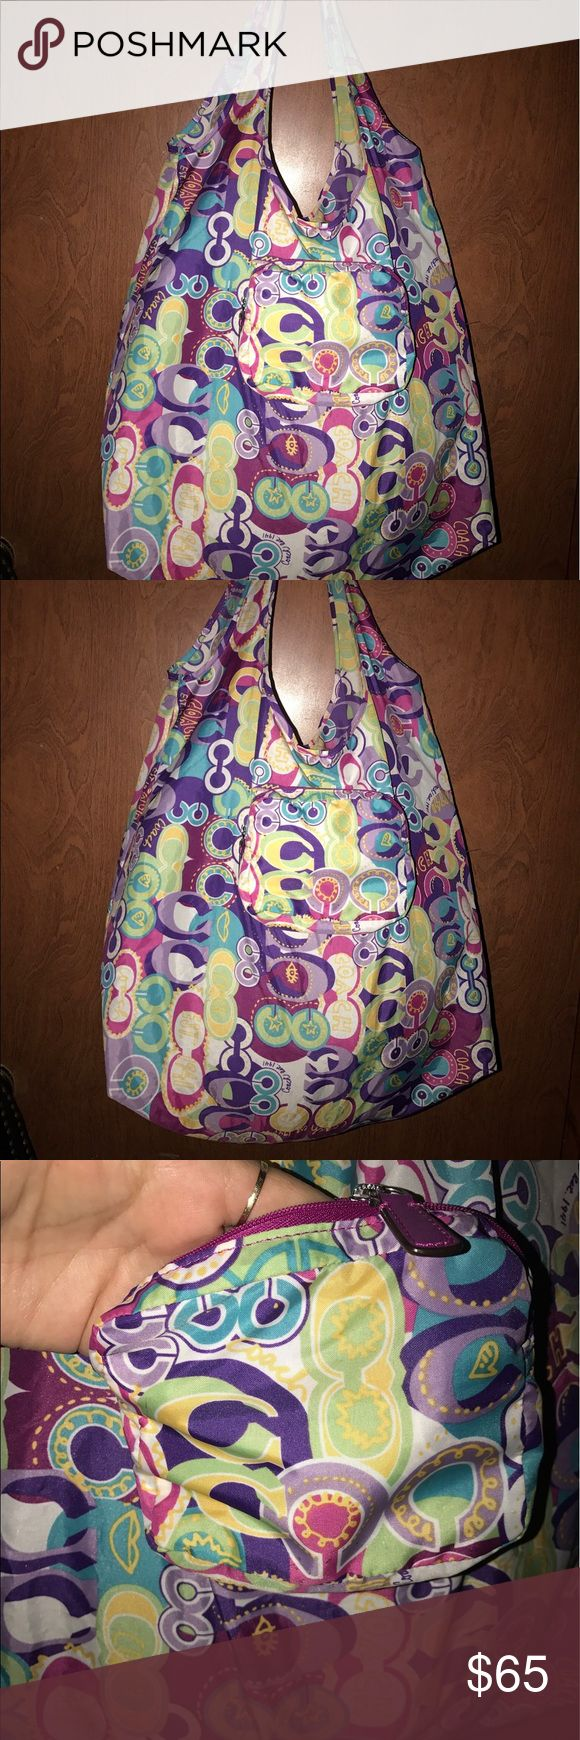 """Authentic Coach Poppy """"POP C"""" multipurpose bag XL Authentic Coach Poppy """"POP C"""" nylon washable foldable tote/shopper/overnight MULTIPURPOSE bag. Folds up for minimal storage. Coach Bags Totes"""